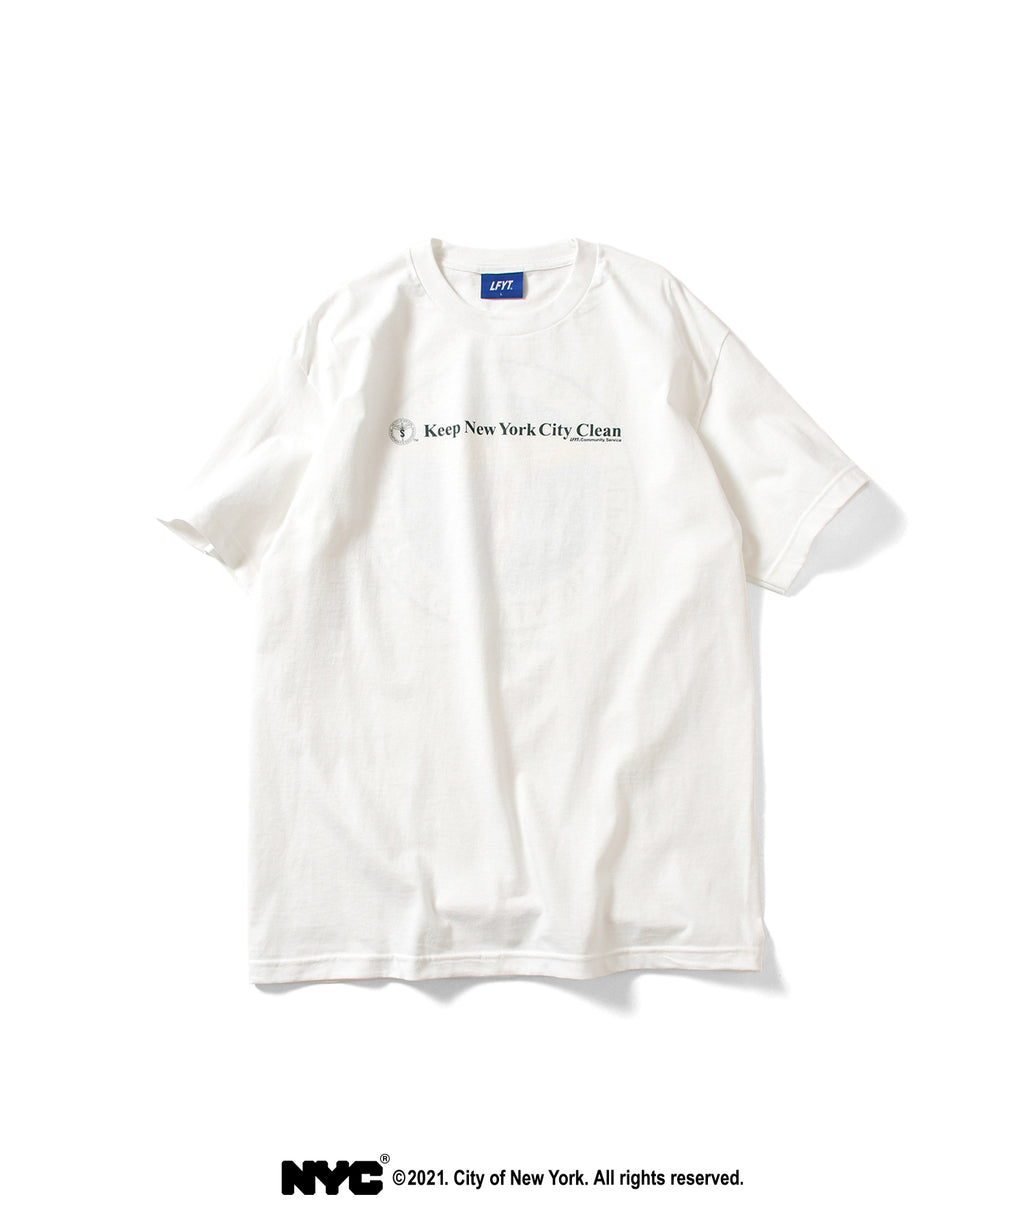 LFYT X DSNY COMMUNITY SERVICES TEE LS210103 WHITE